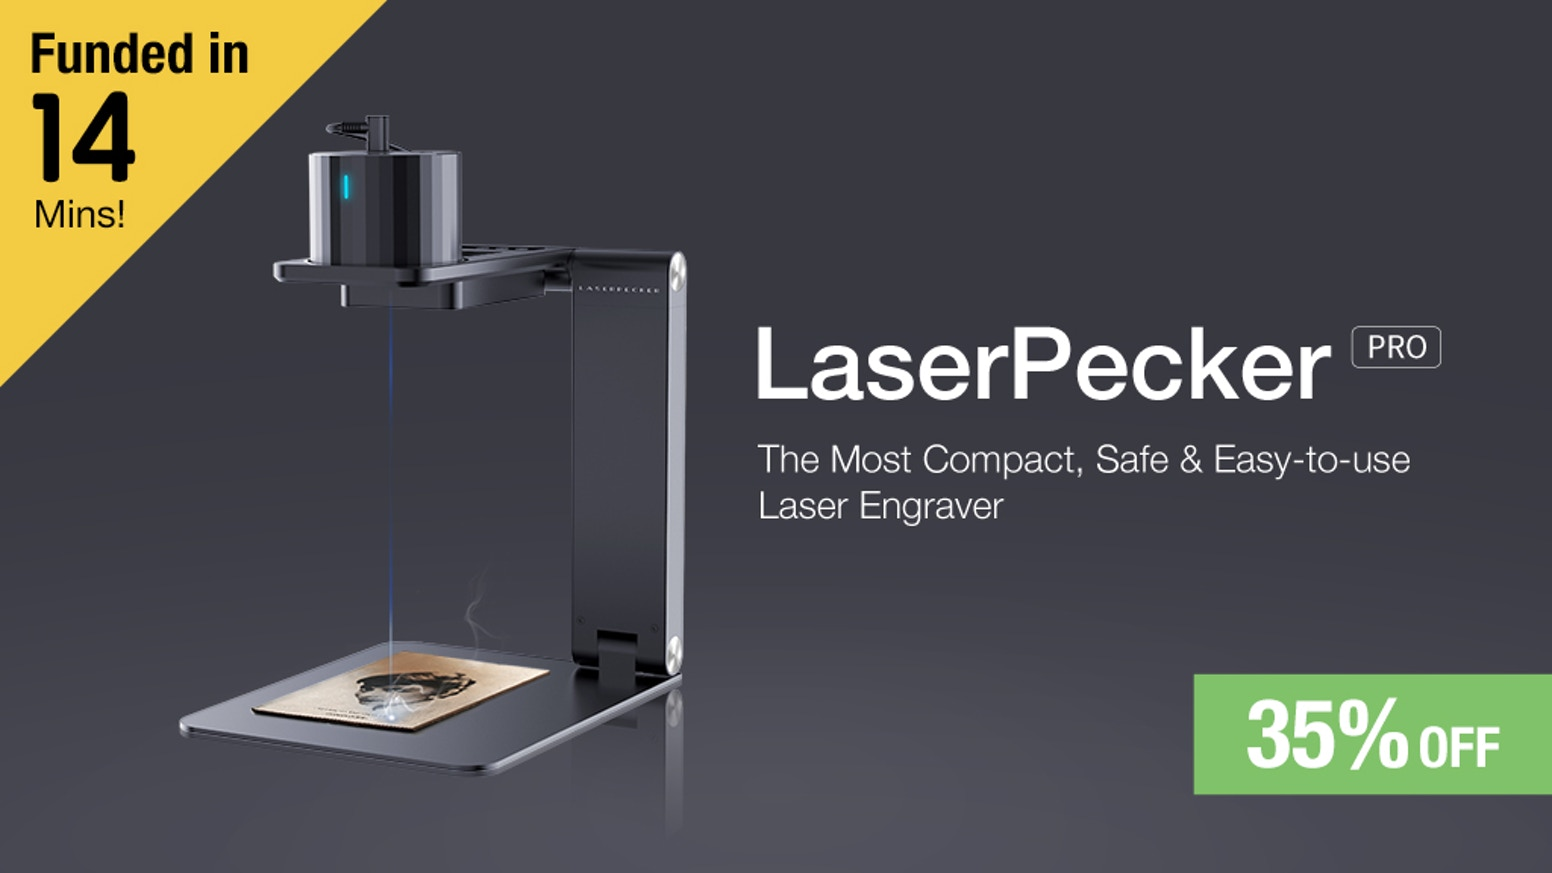 Compact, Safe & Easy-to-use ​Laser Engraver